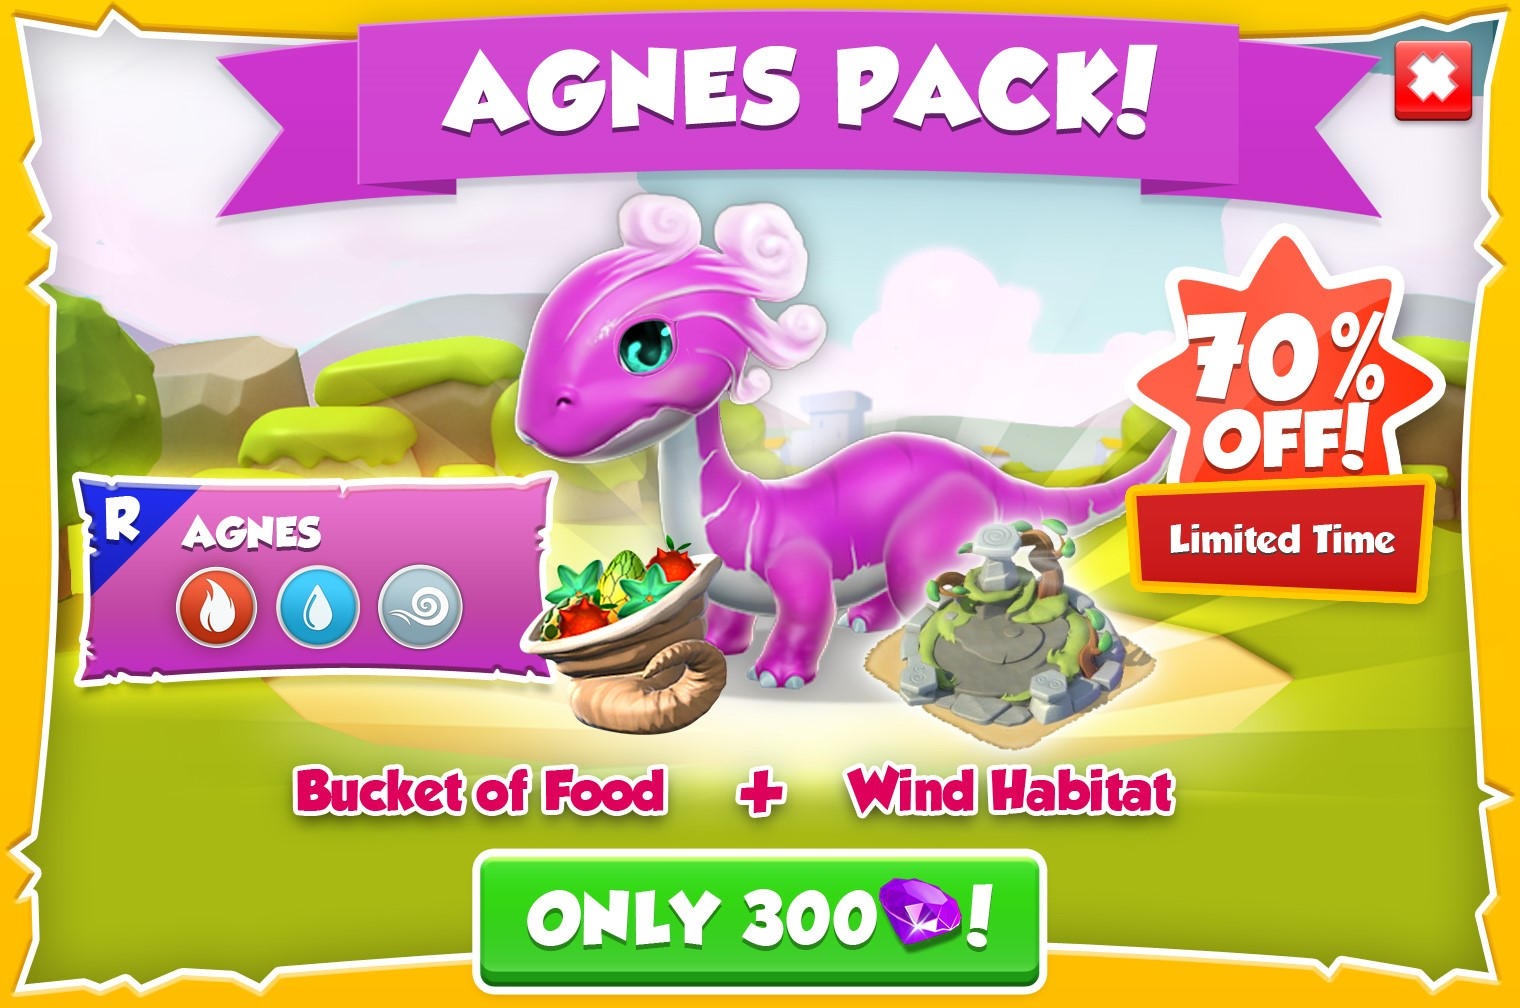 agnes-dragon-pack